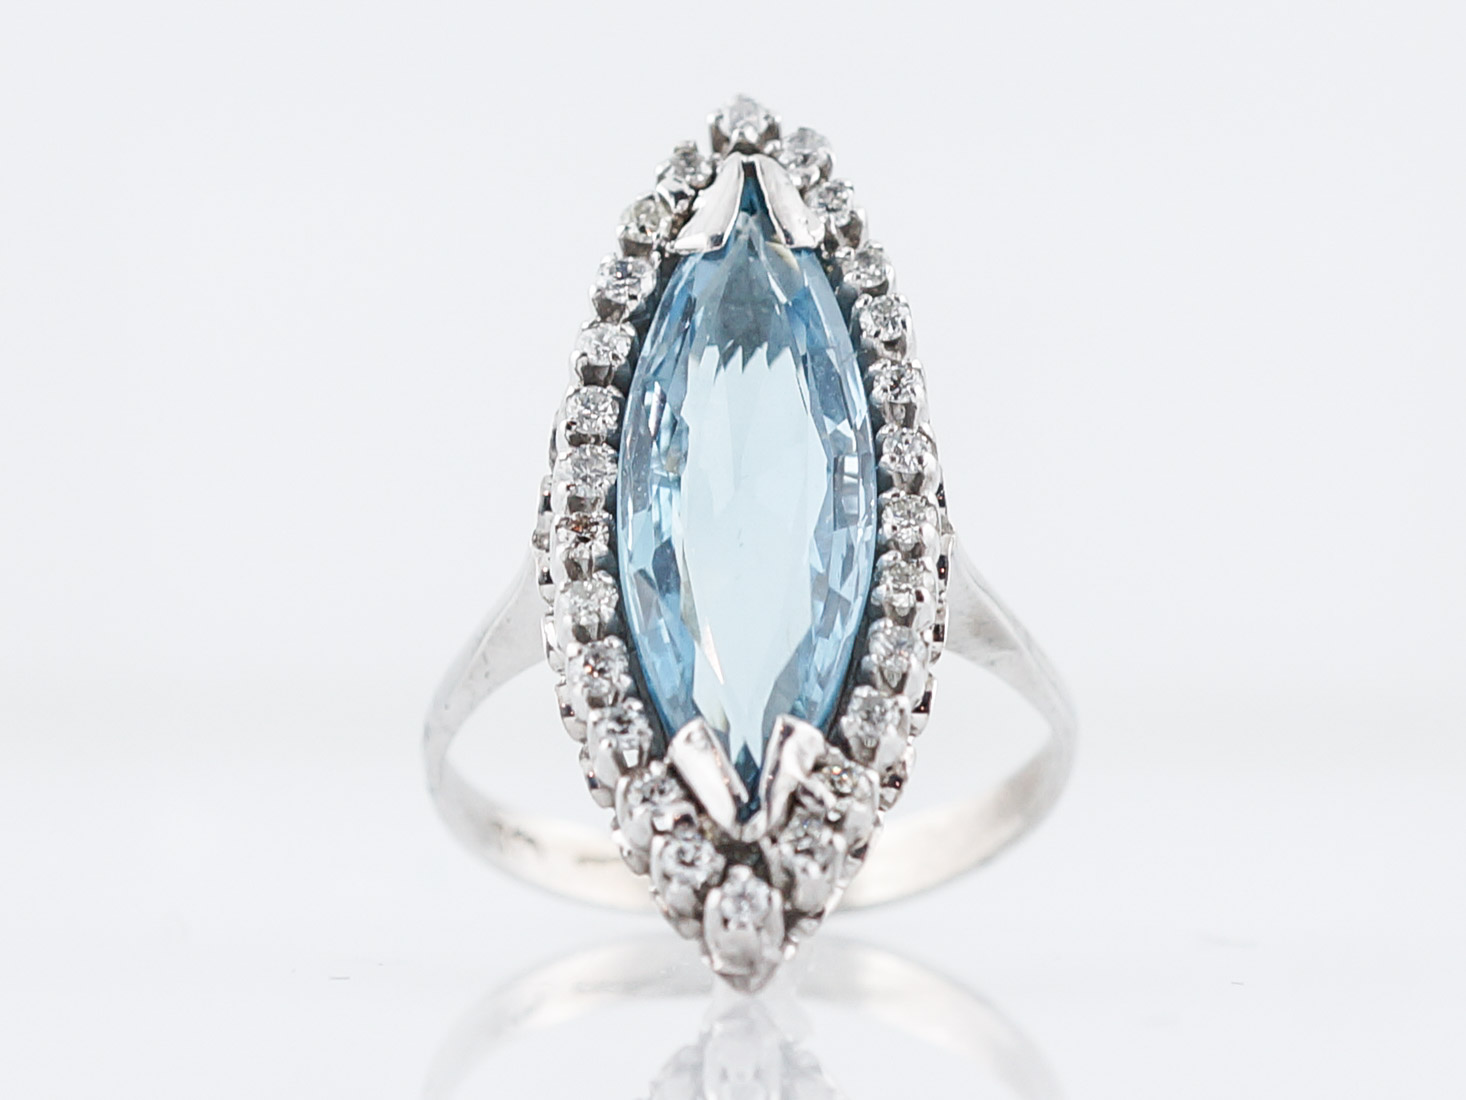 Vintage Cocktail Ring Mid-Century 1.58 Marquise Cut Aquamarine in 18k White Gold-1